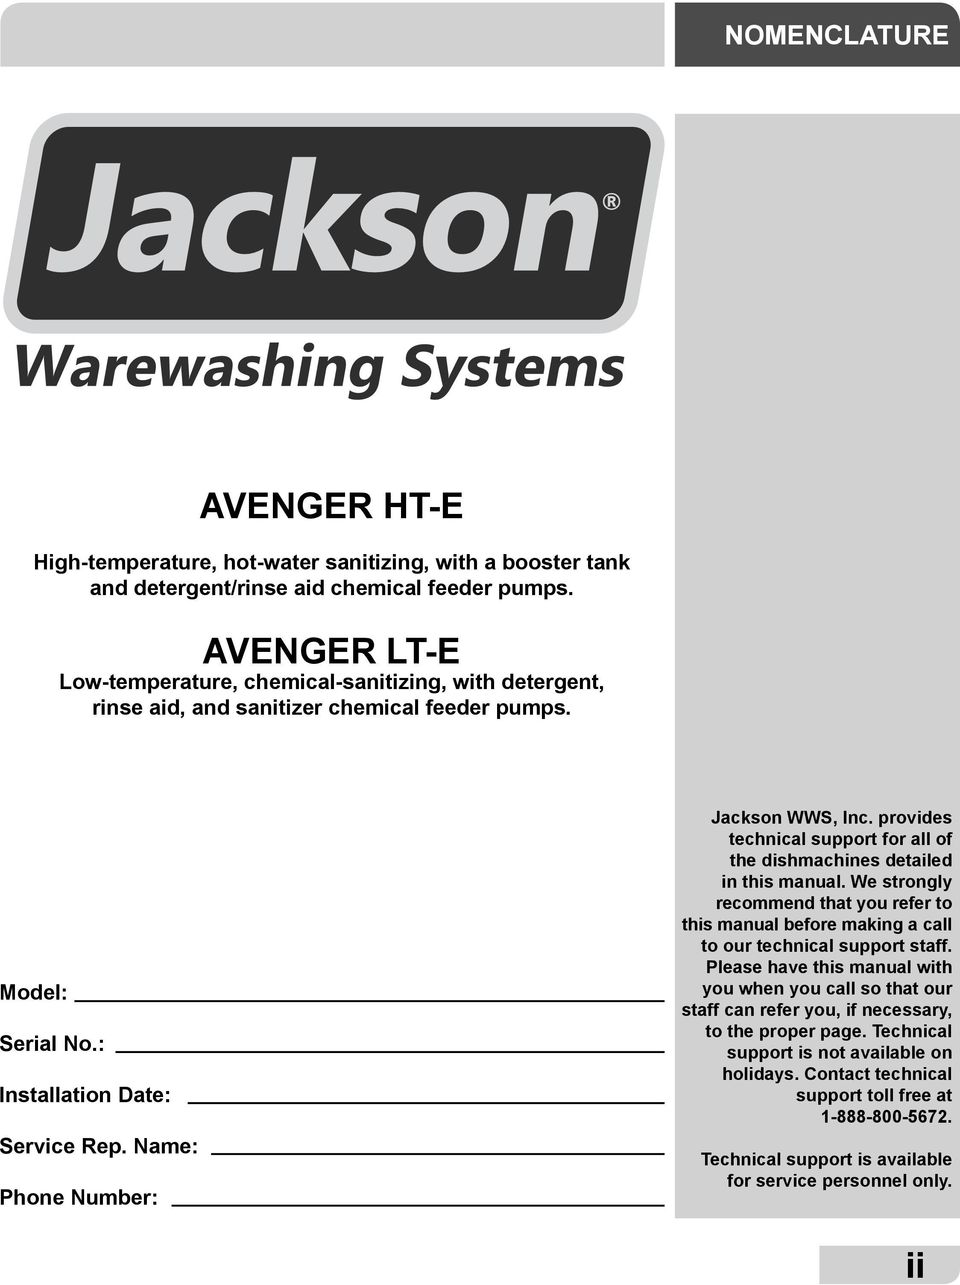 hight resolution of name phone number jackson wws inc provides technical support for all of